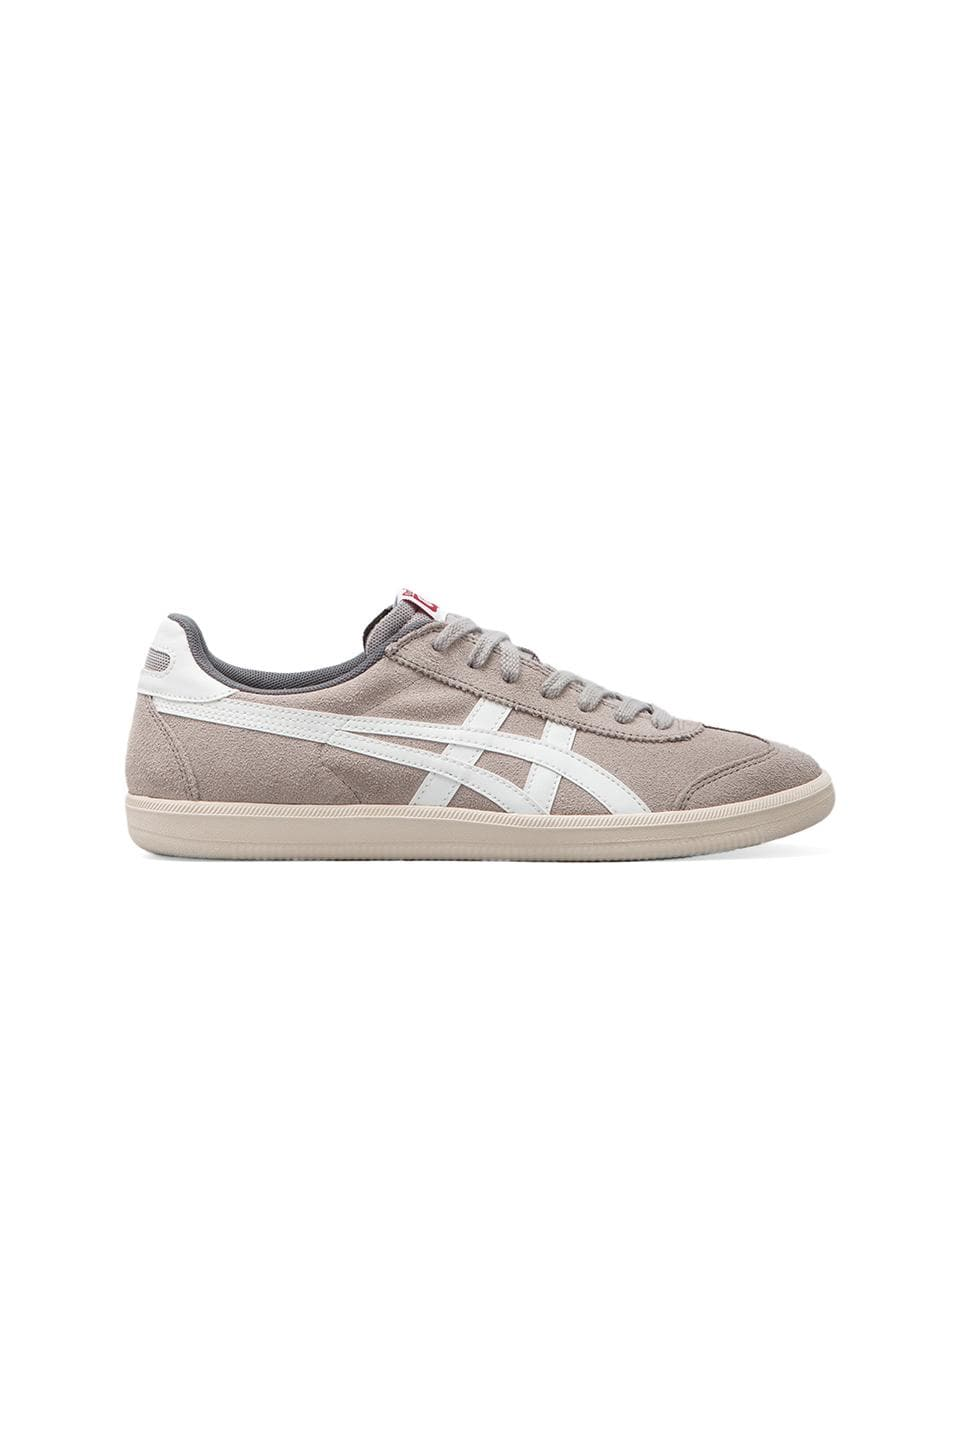 Onitsuka Tiger Tokuten in Grey/White